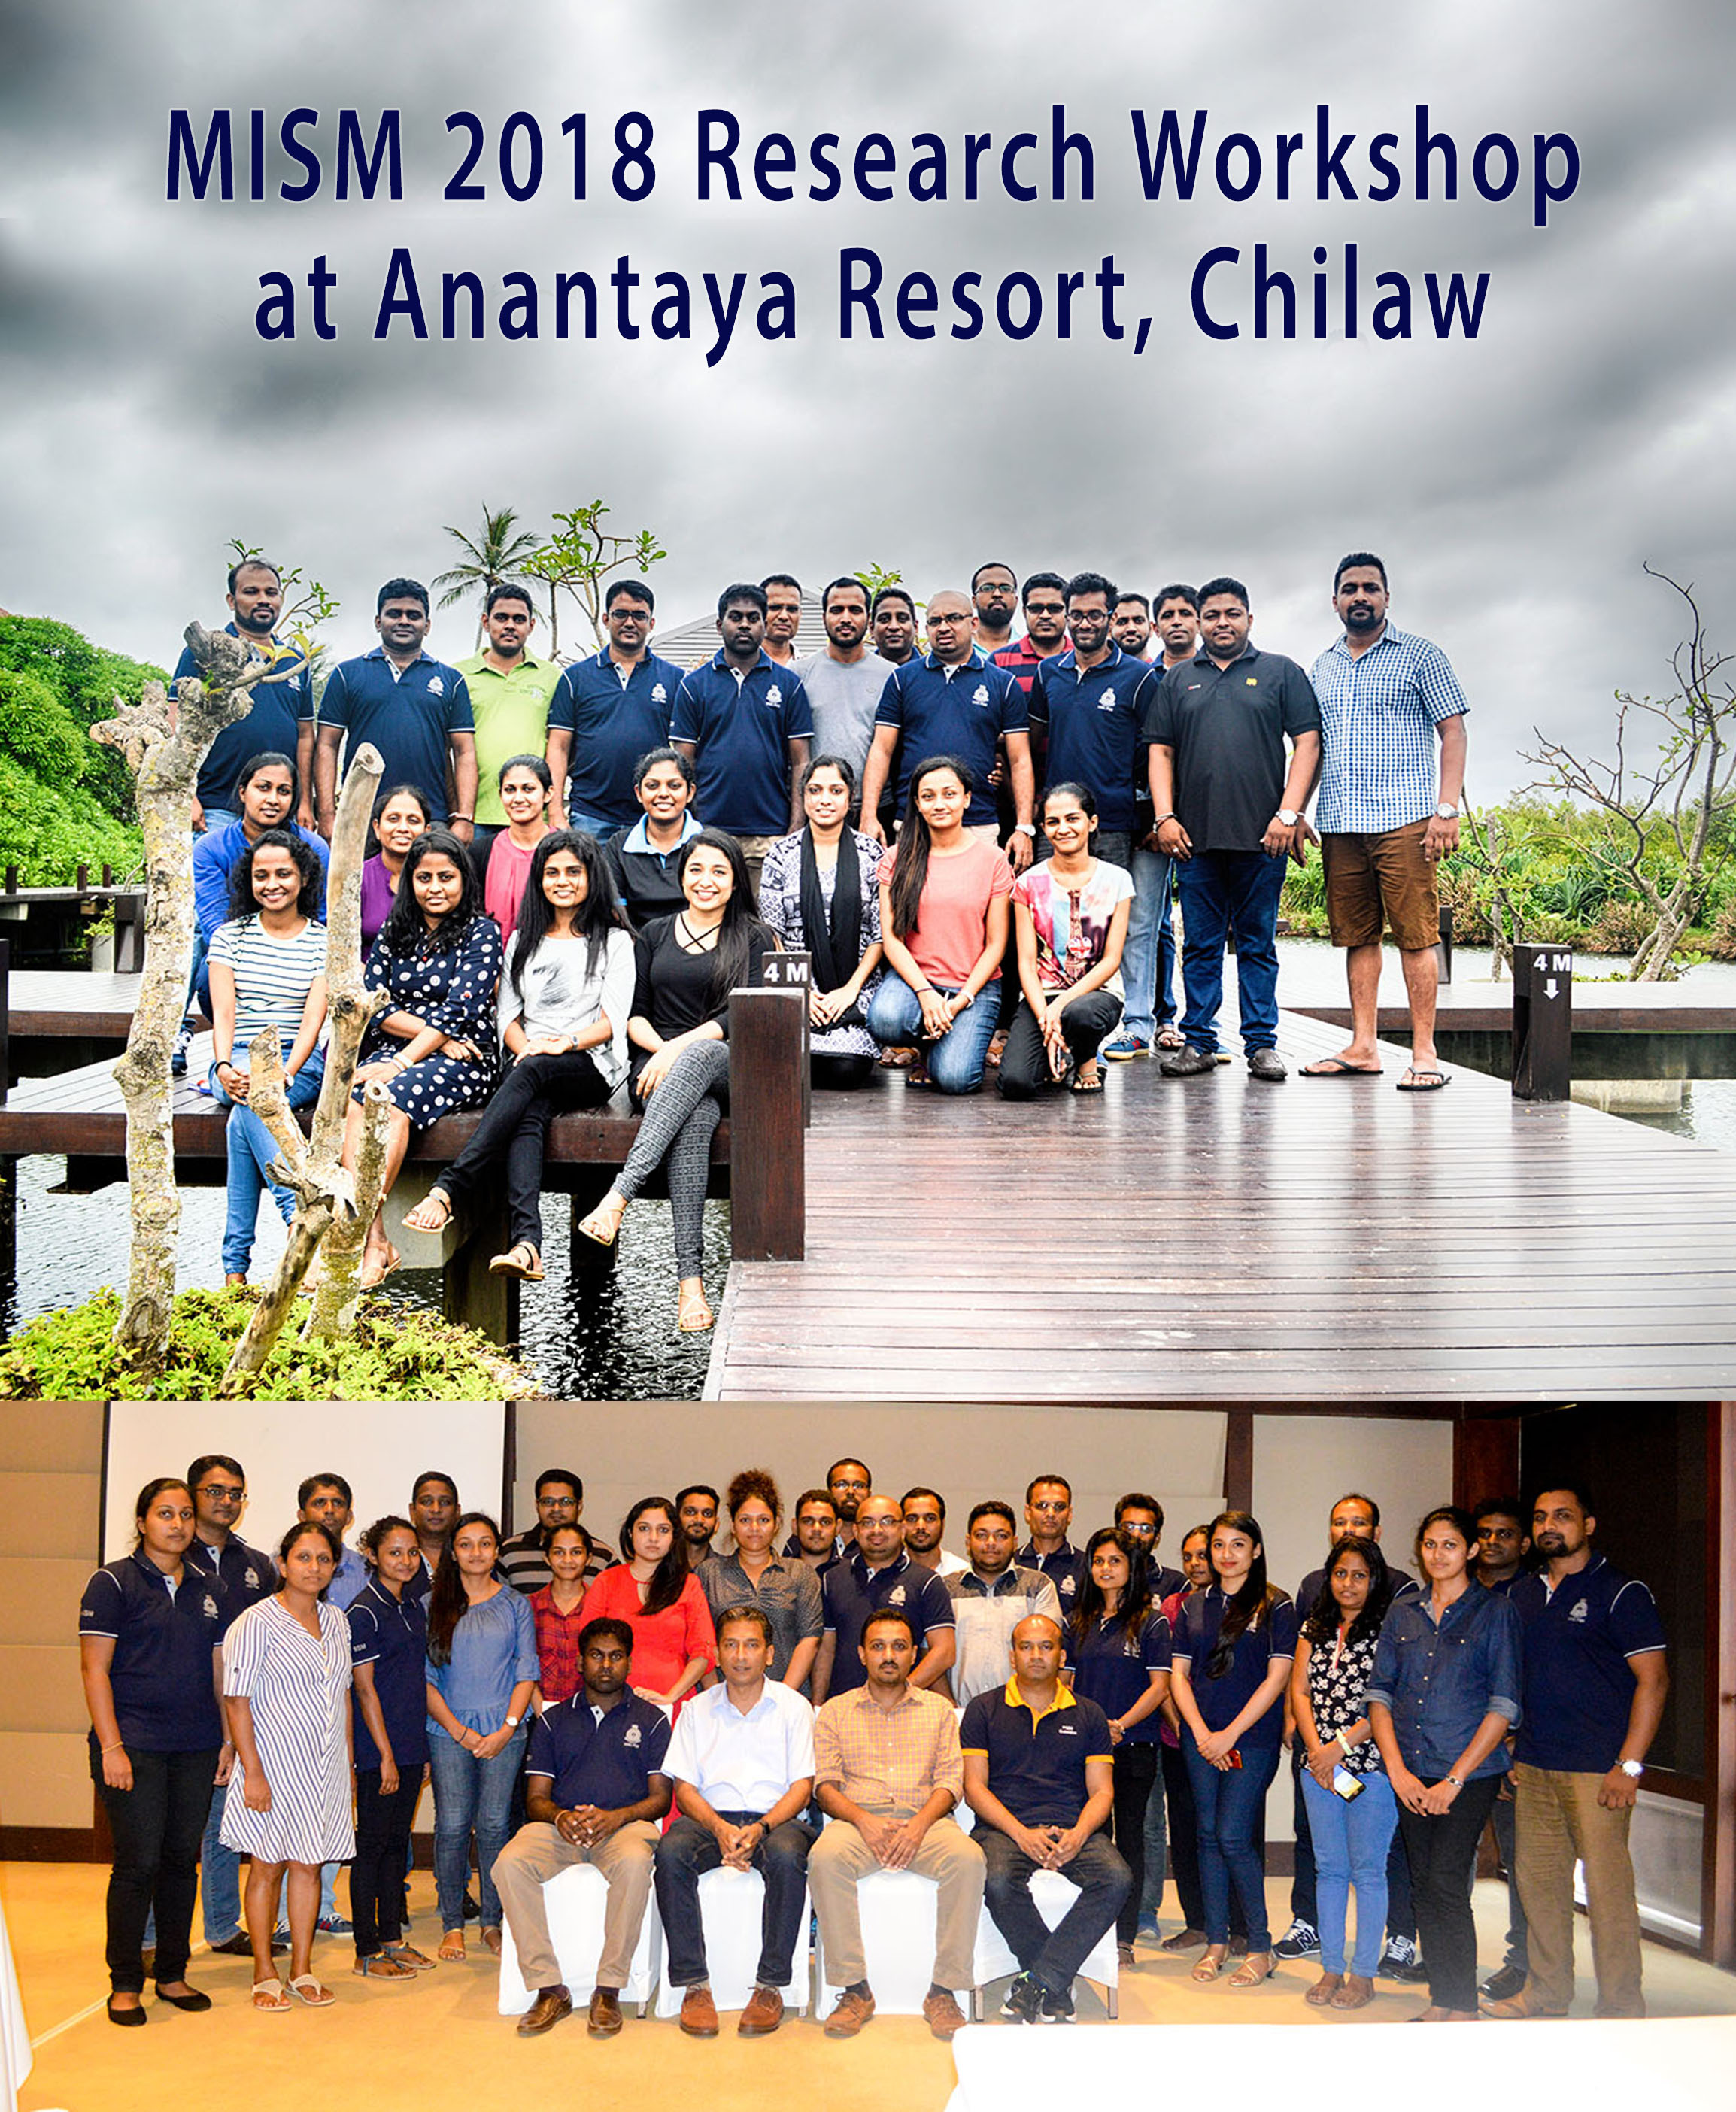 MISM 2018 Research Workshop at Anantaya Resort, Chilaw